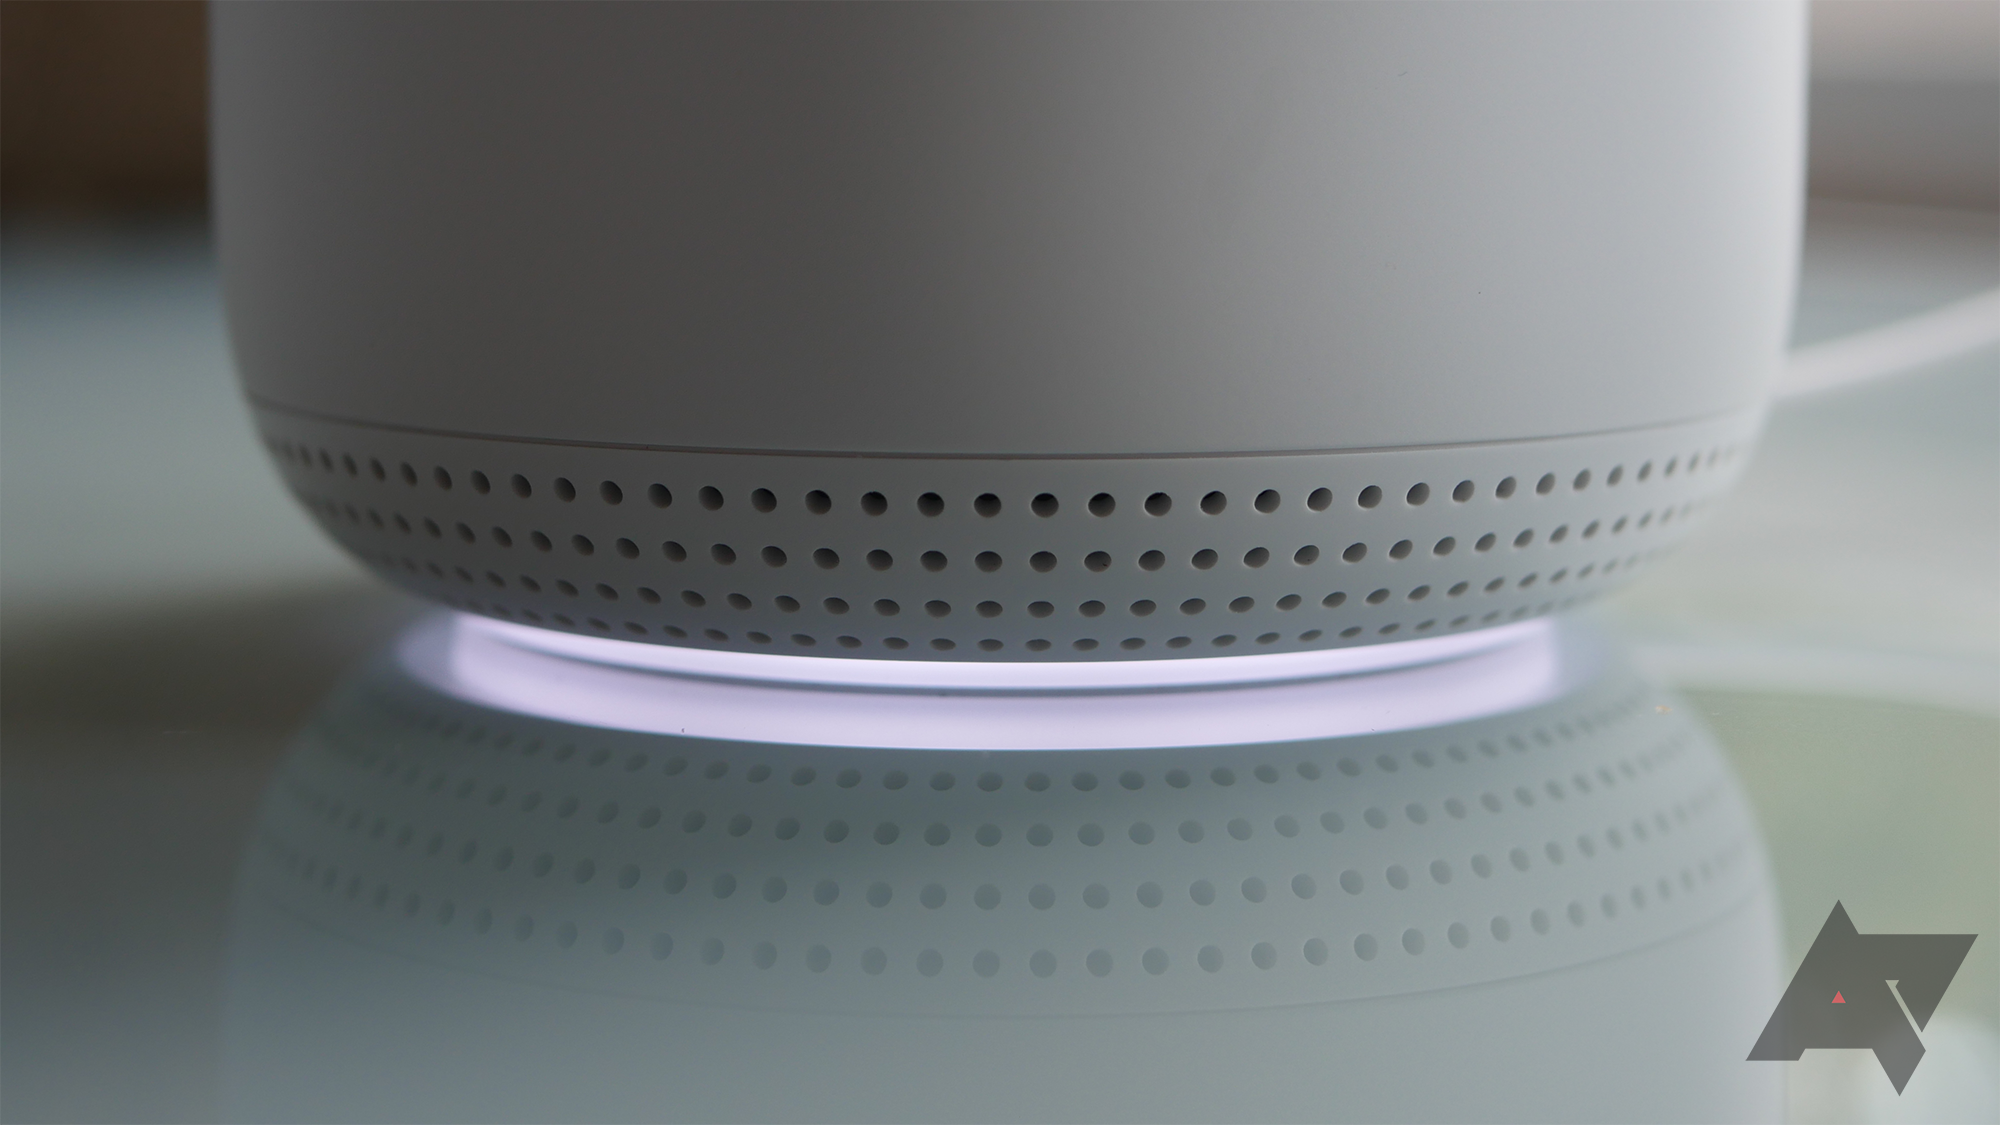 Should you buy a WiFi range extender or a mesh router?